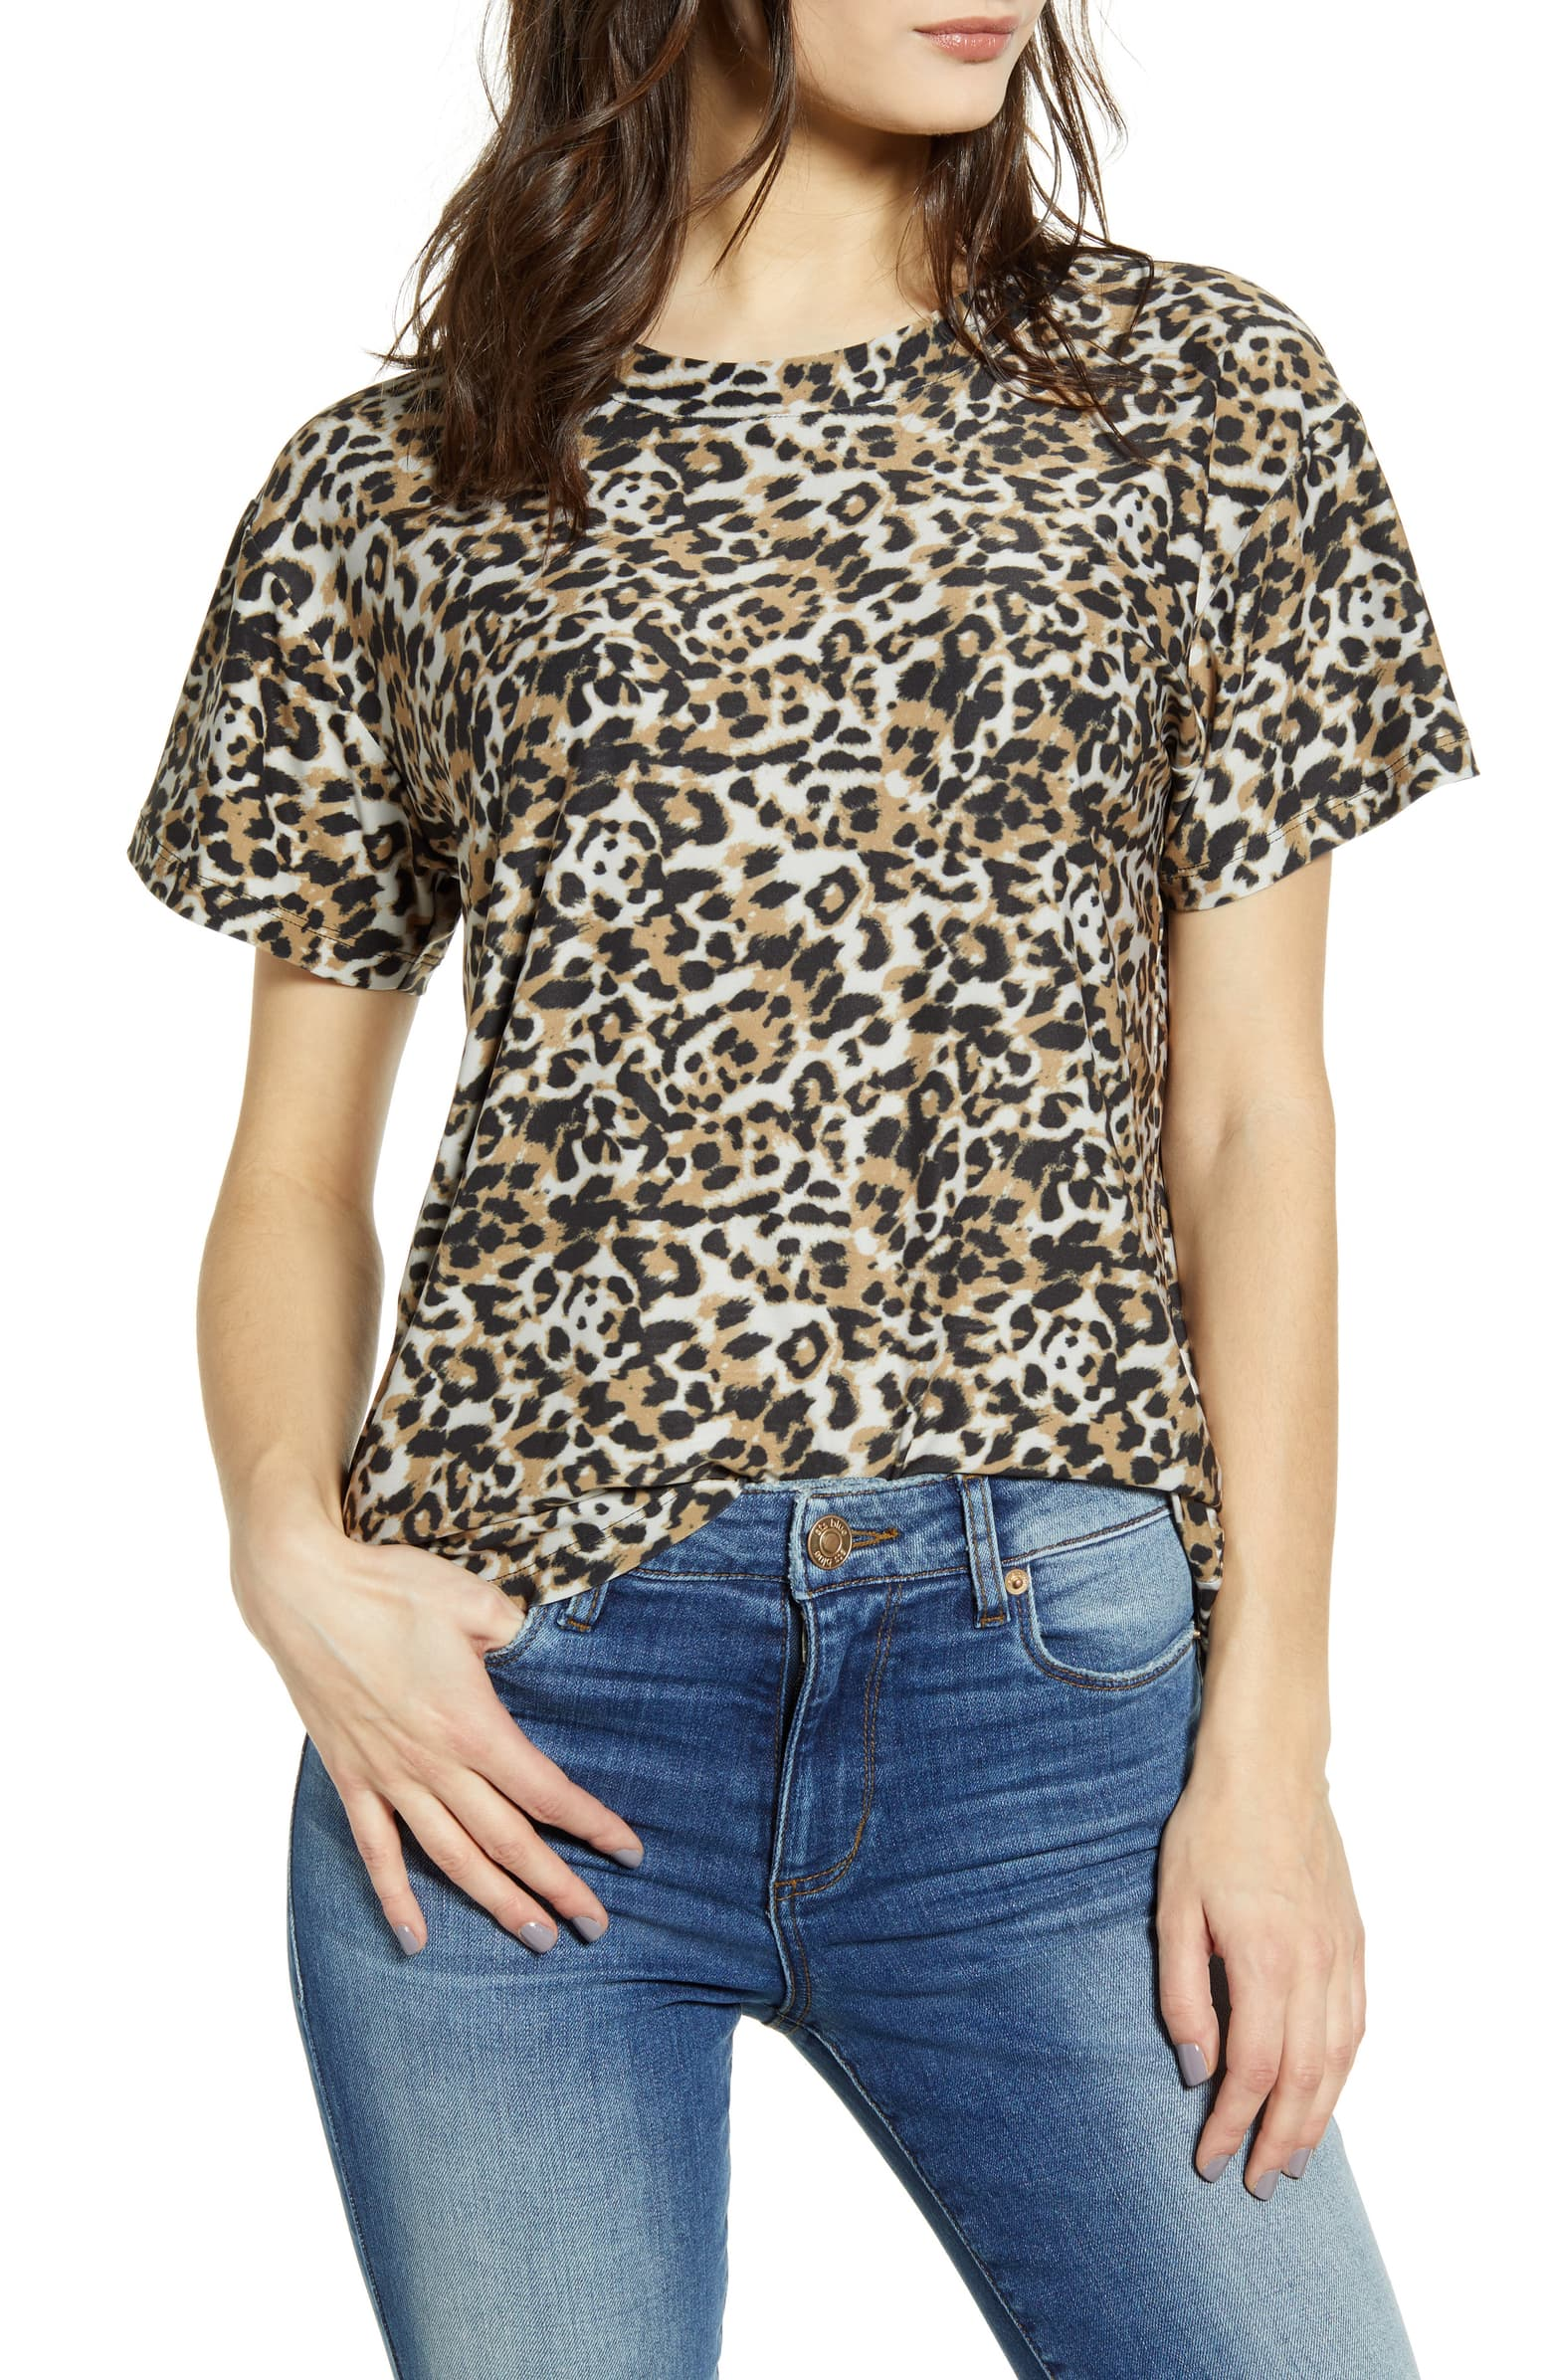 Nordstrom Anniversary Sale - #NSALE - Nordstrom Sale - Fall Fashion - Women's Fashion - Sabby Style-10